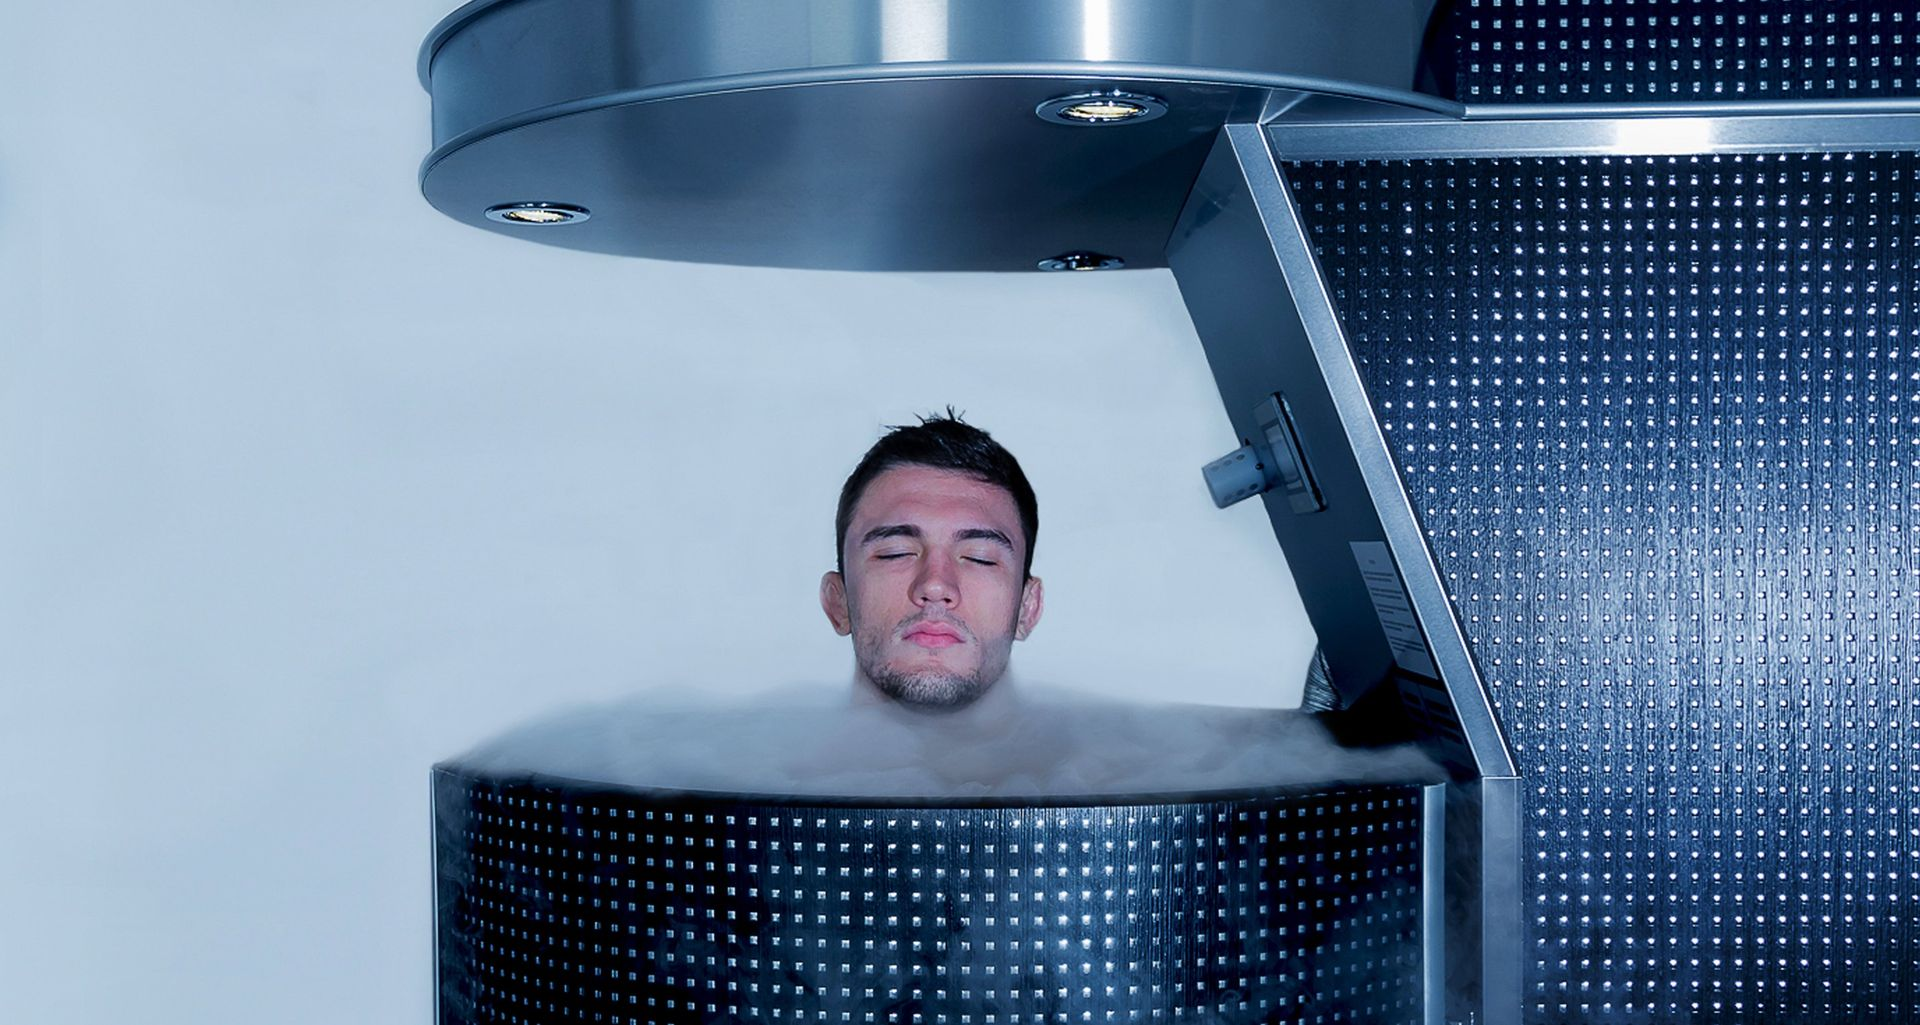 Evolve Cryo Fit - The Best Thing You Can Do For Your Body